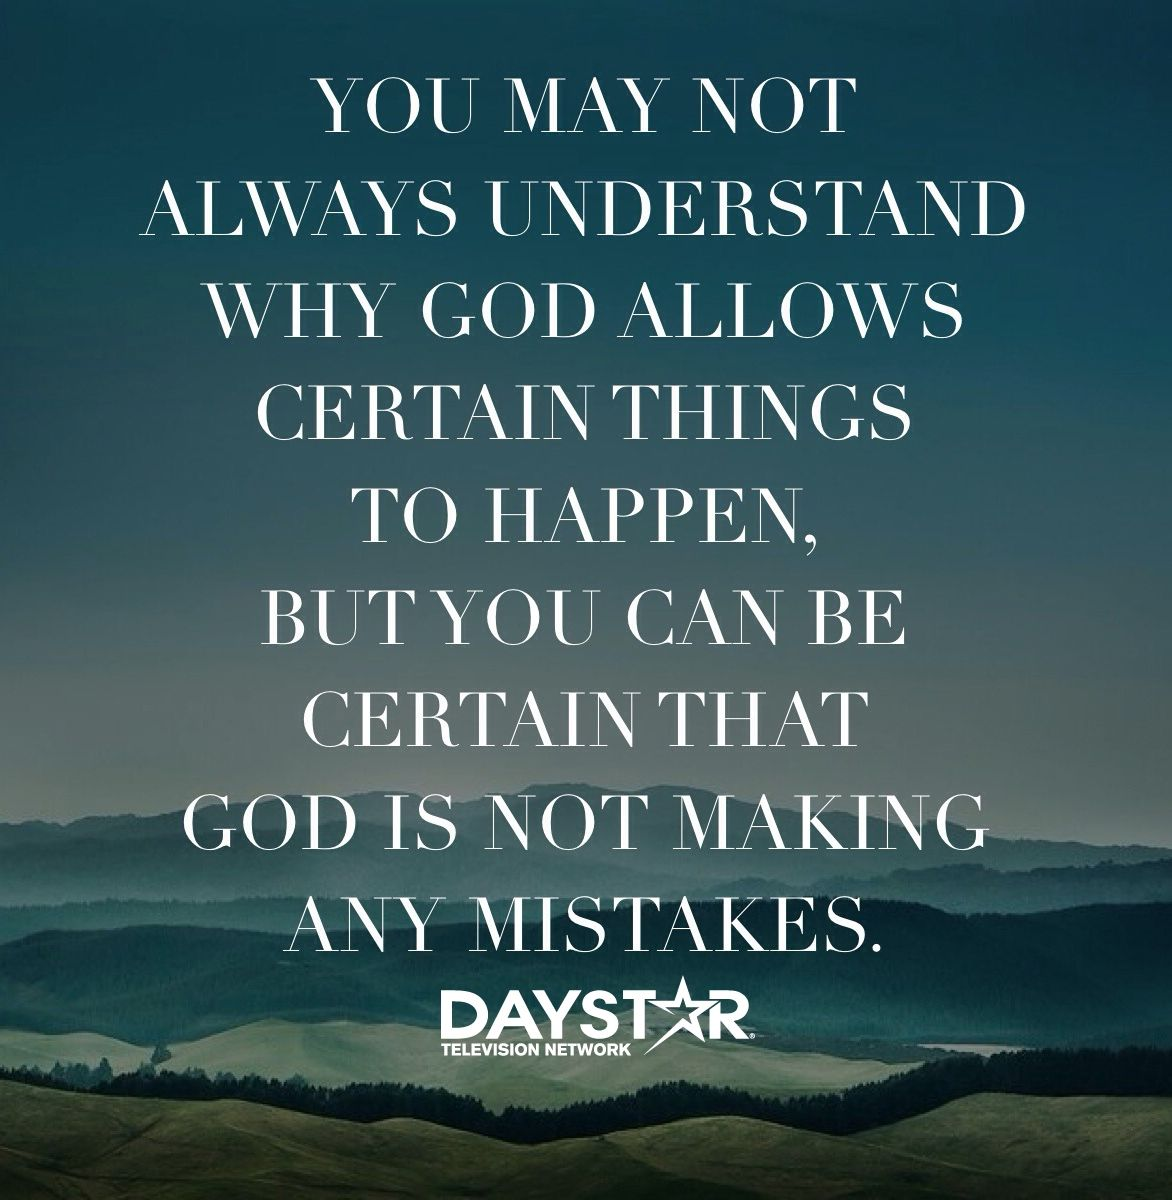 You may not always understand why God allows certain